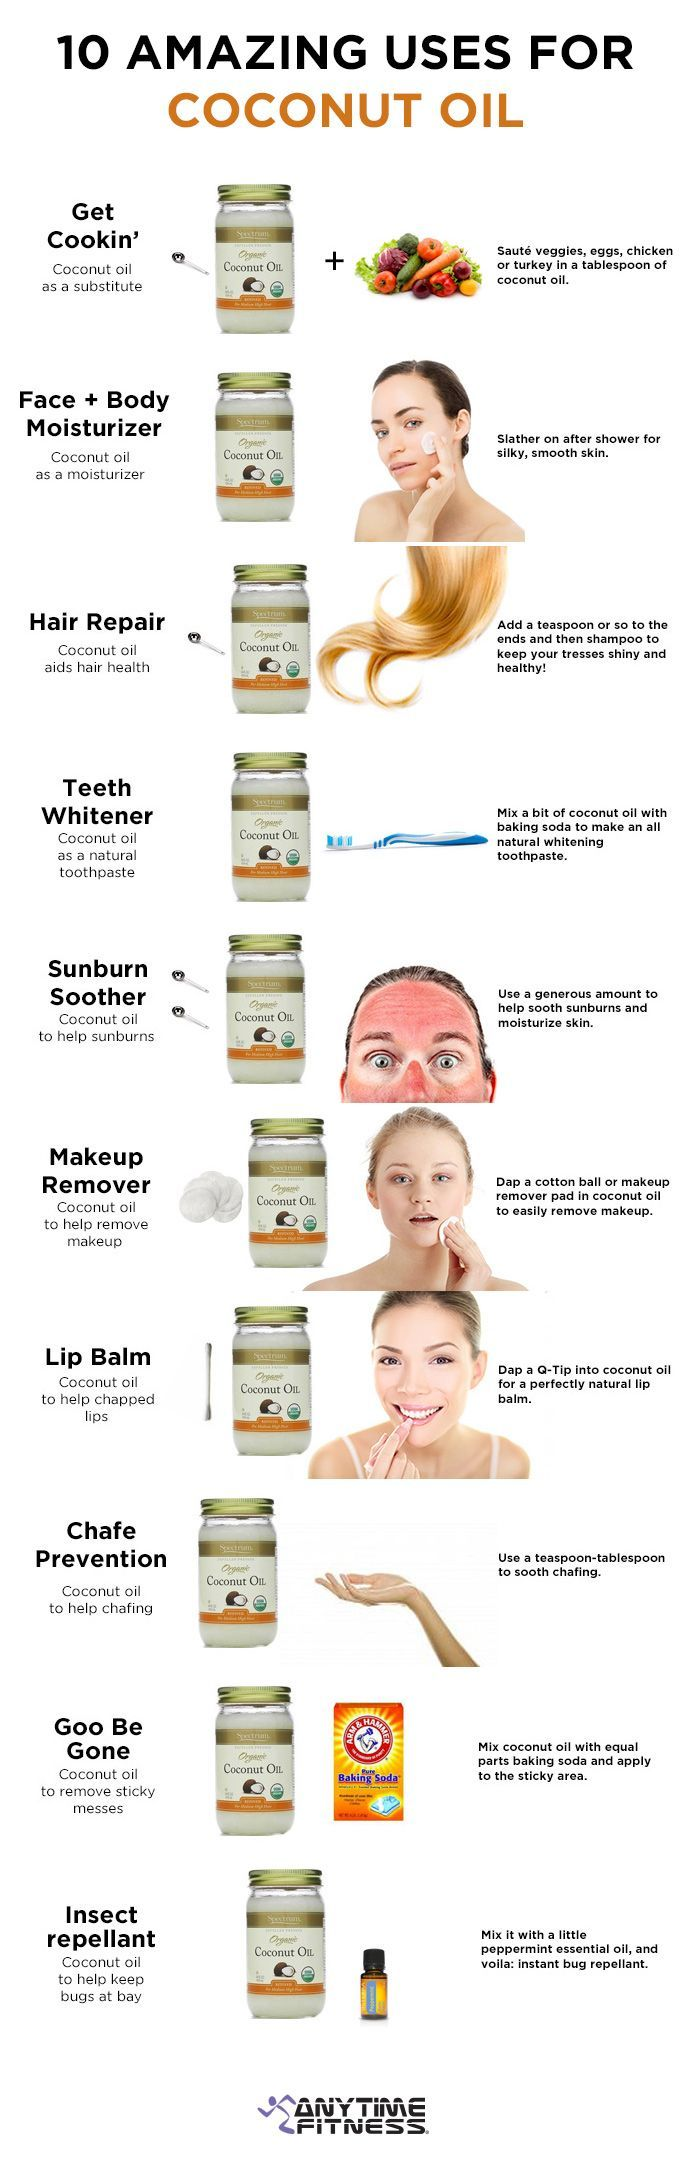 10 Amazing Uses for Coconut Oil